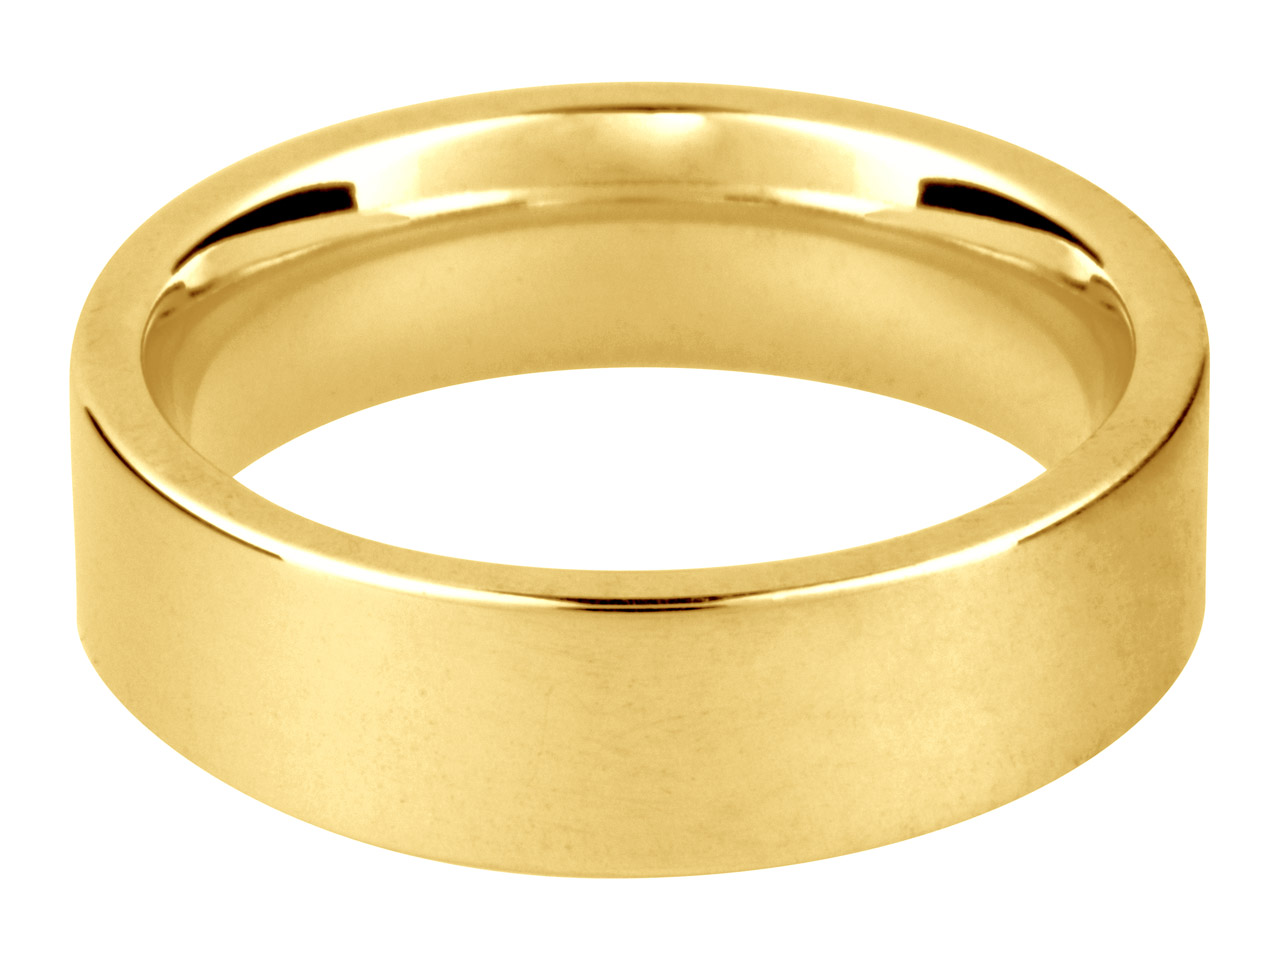 9ct Yellow Easy Fit Wedding Ring   2.5mm K 2.3gms Medium Weight       Hallmarked Wall Thickness 1.48mm